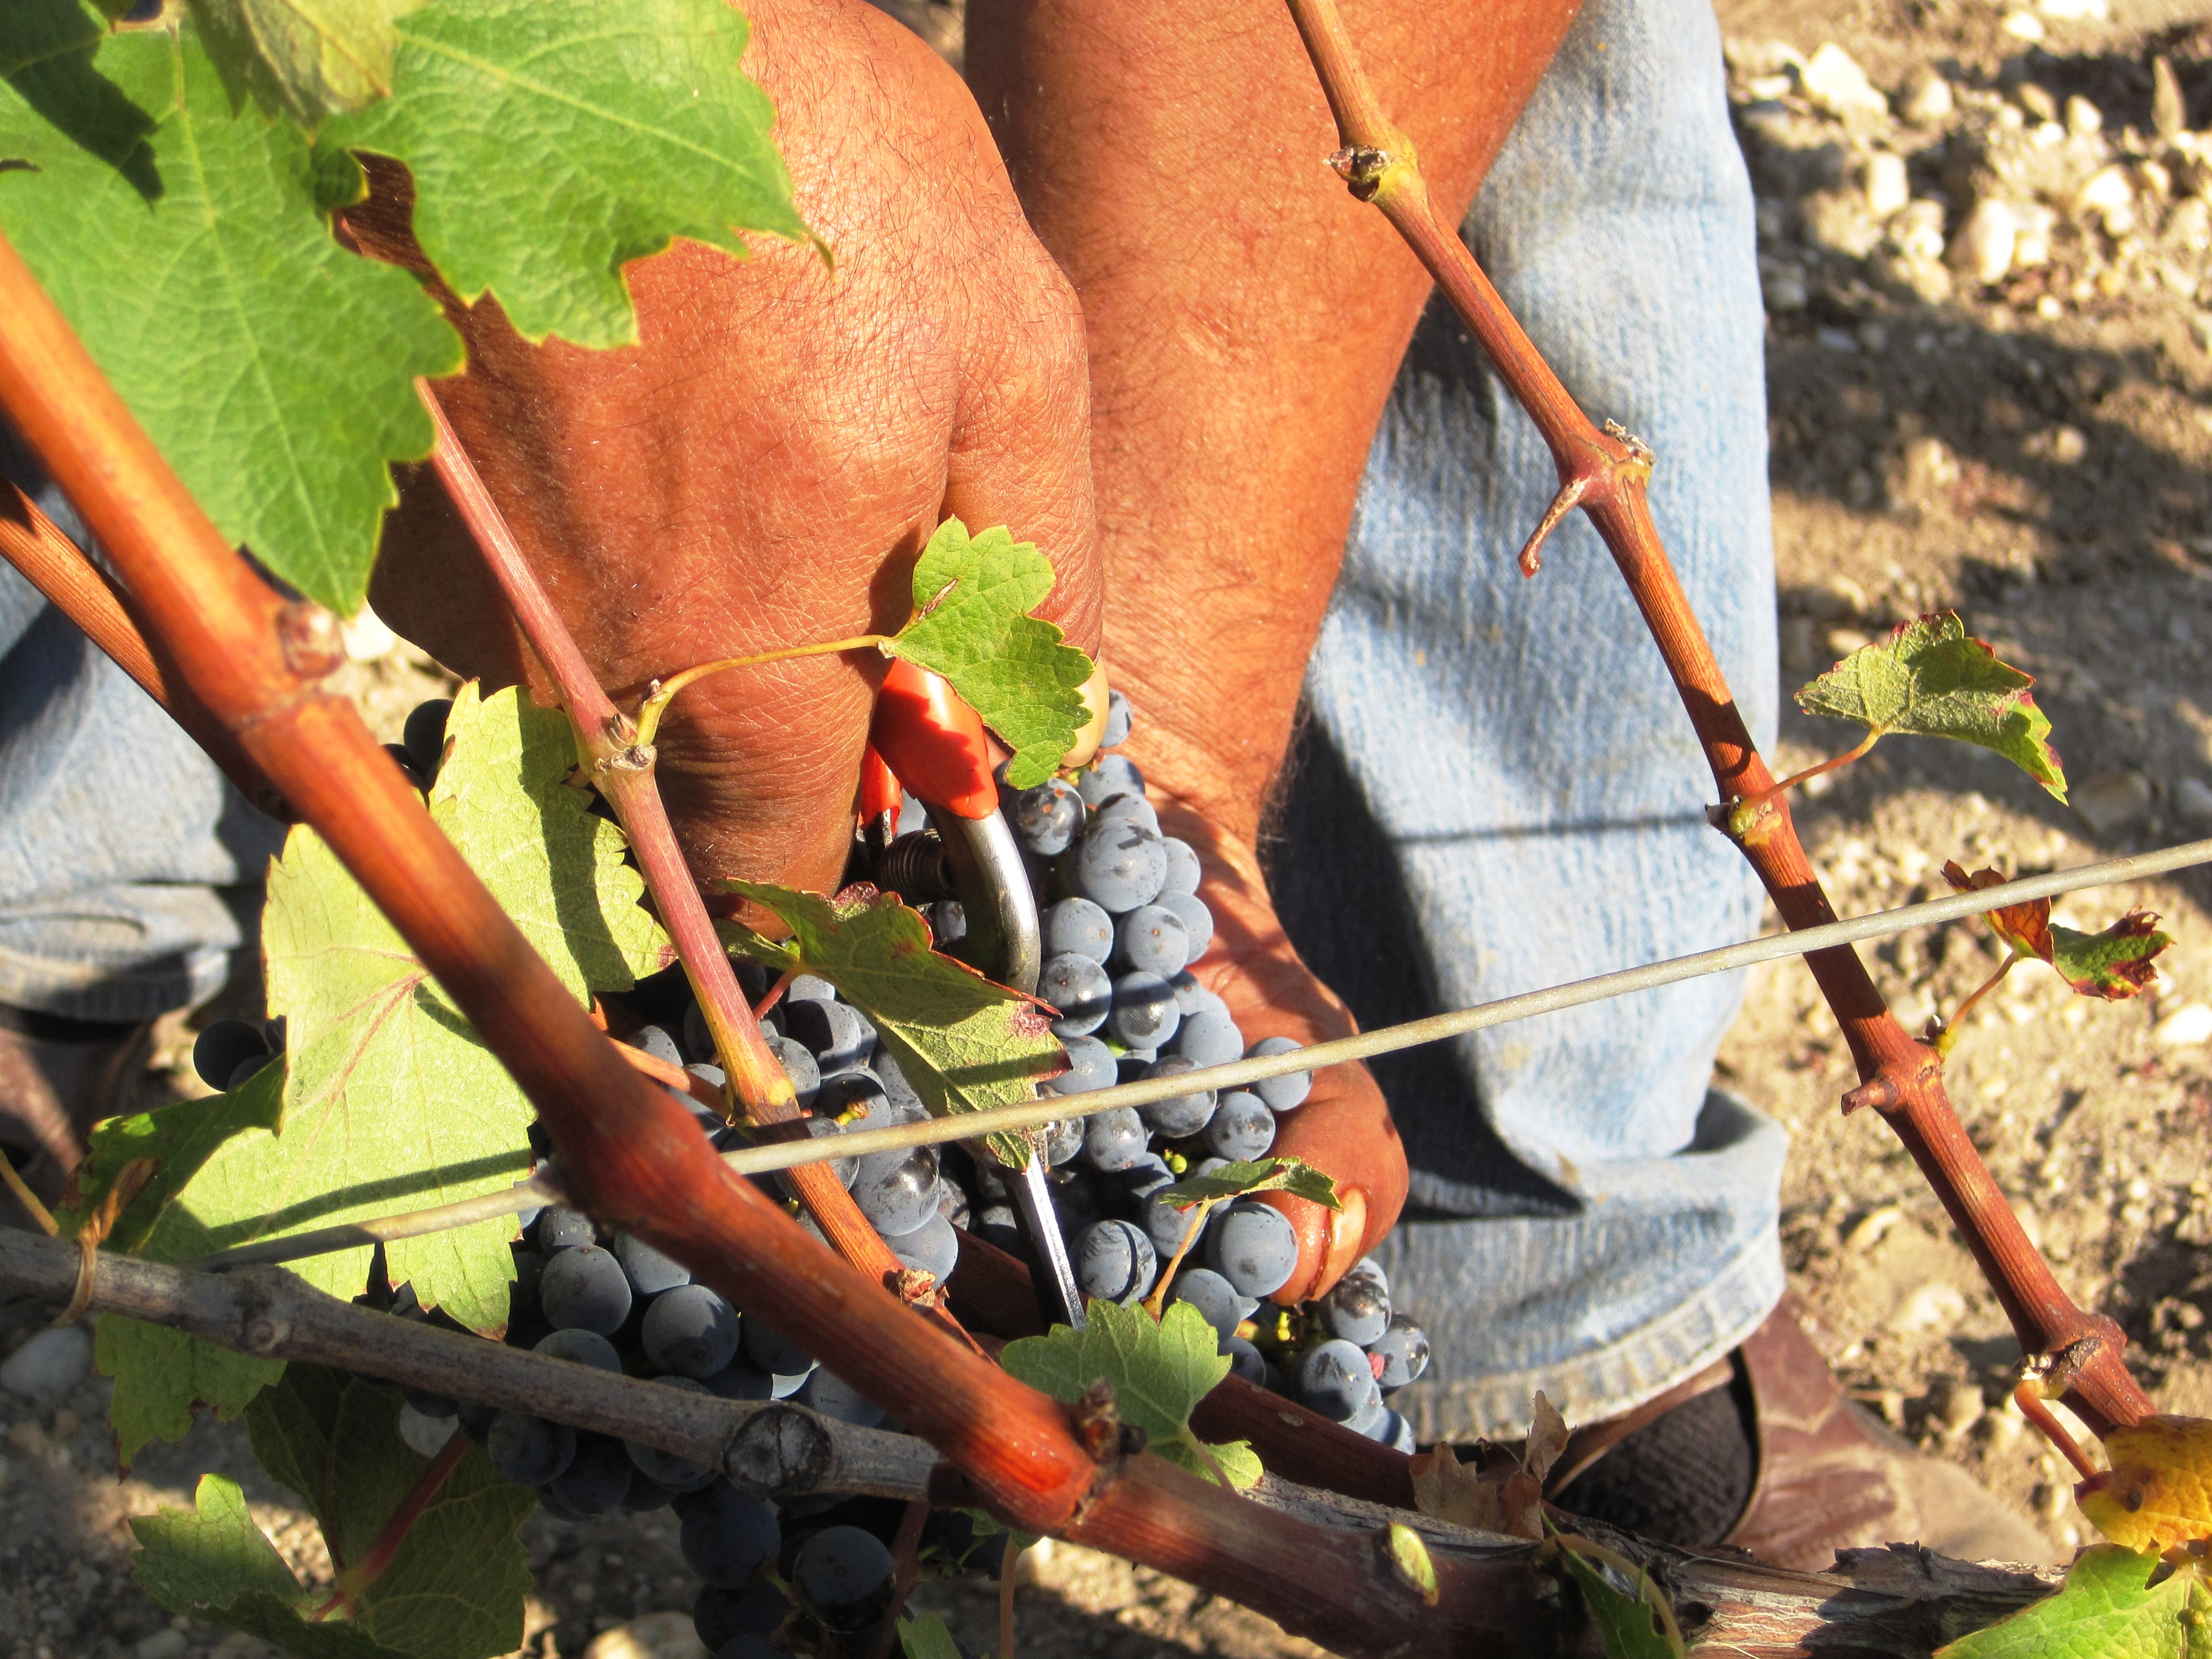 2010 Mouton Rothschild Harvest Reminds Philippe Dhalluin of 1986, 1996